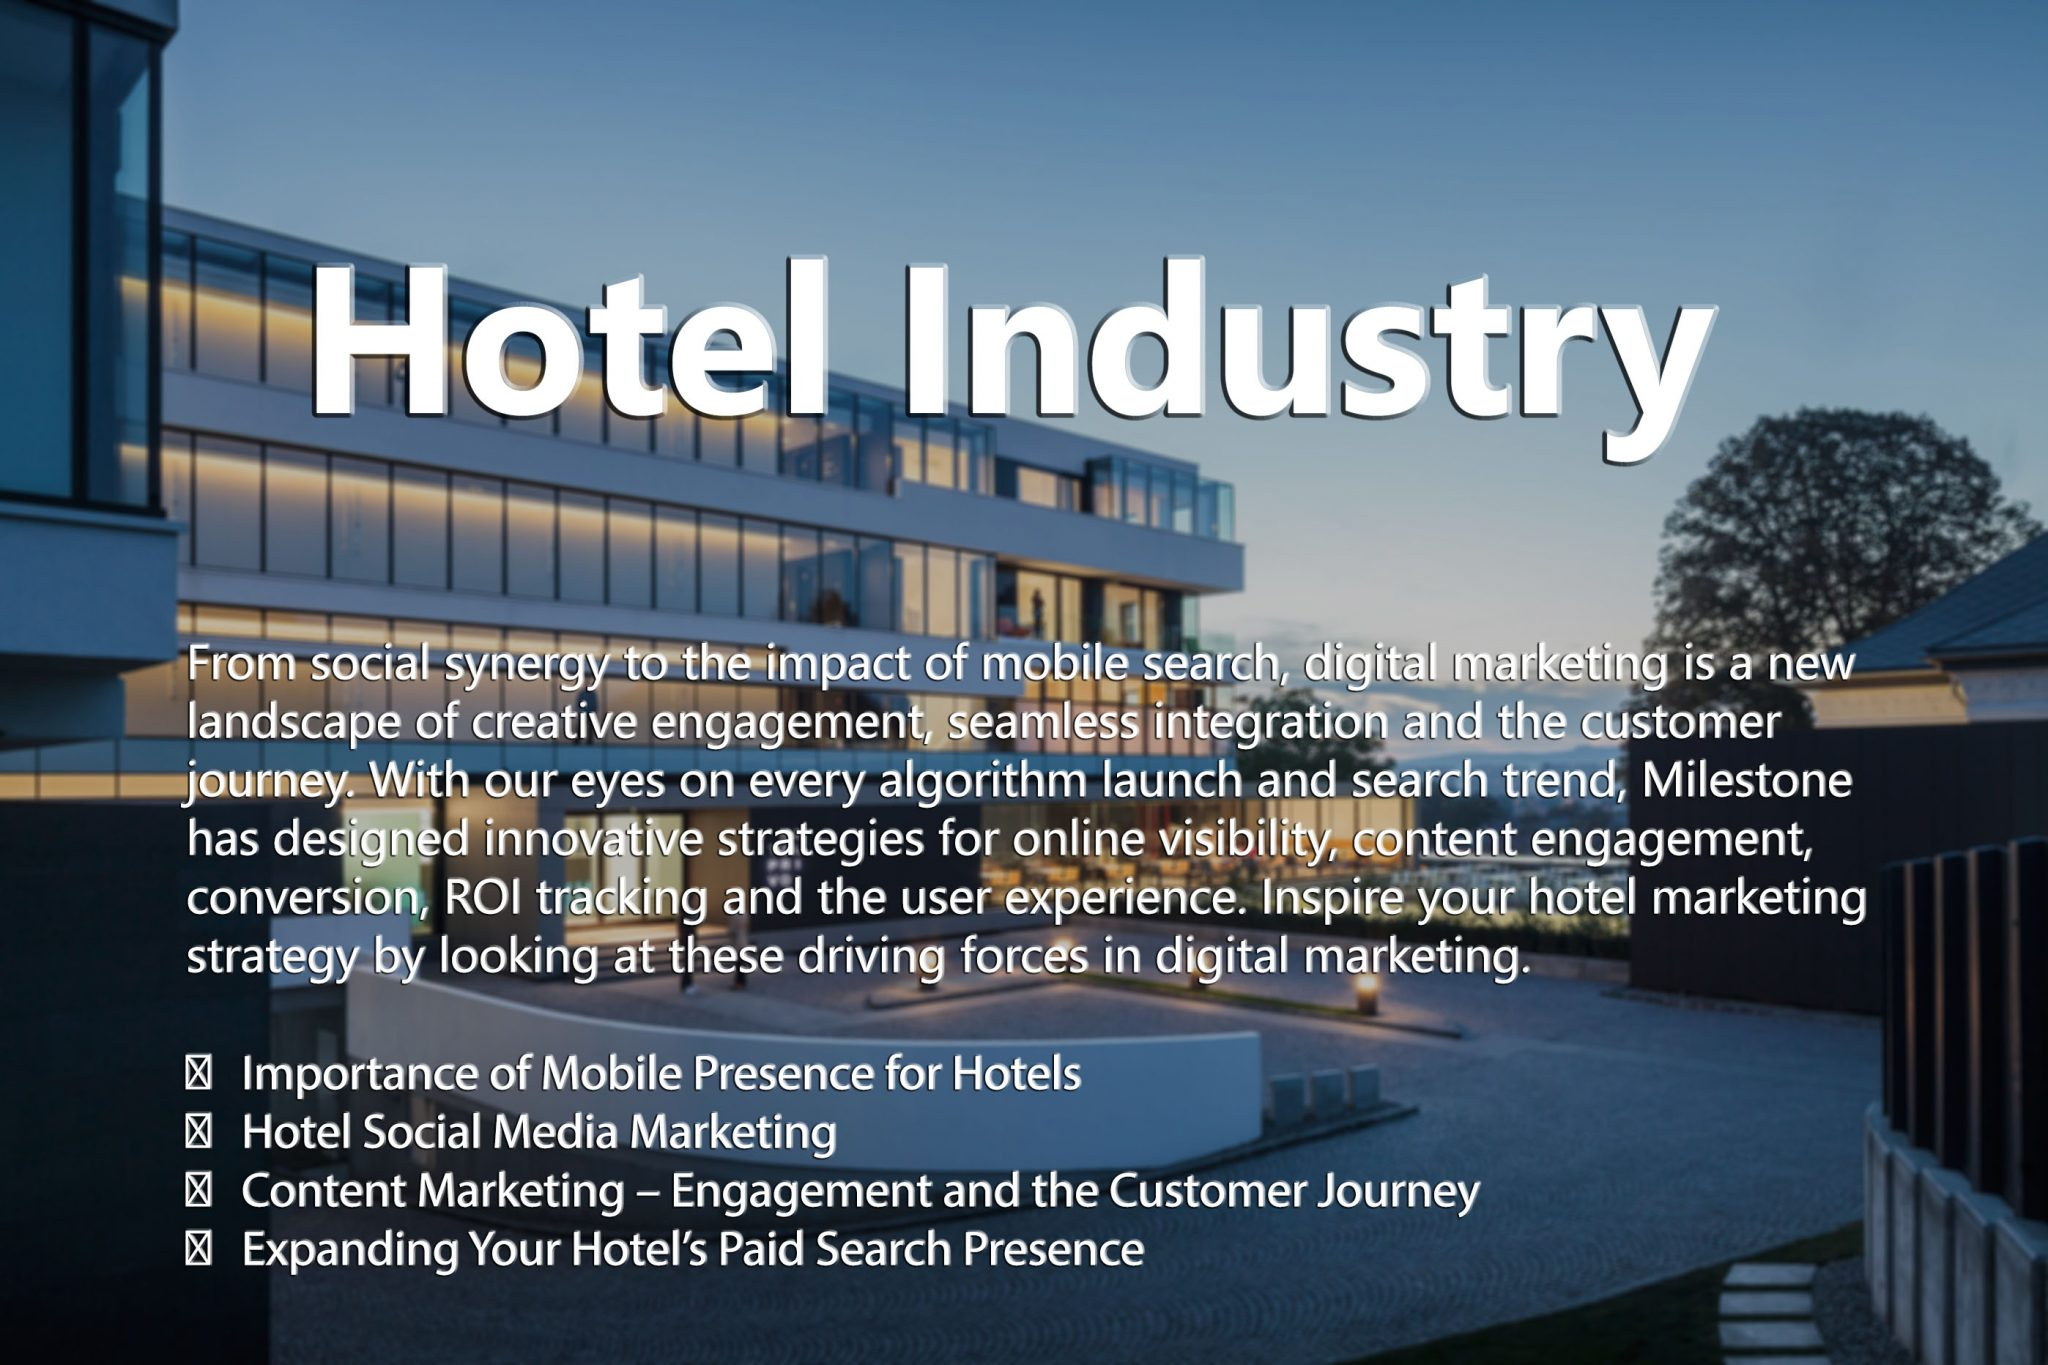 marketing mix related to hospitality industry in Inspire your hotel marketing strategy by looking at these driving forces in digital marketing the milestone team recently hosted a free educational session on 2015 top digital marketing trends and strategies for the hospitality industry.